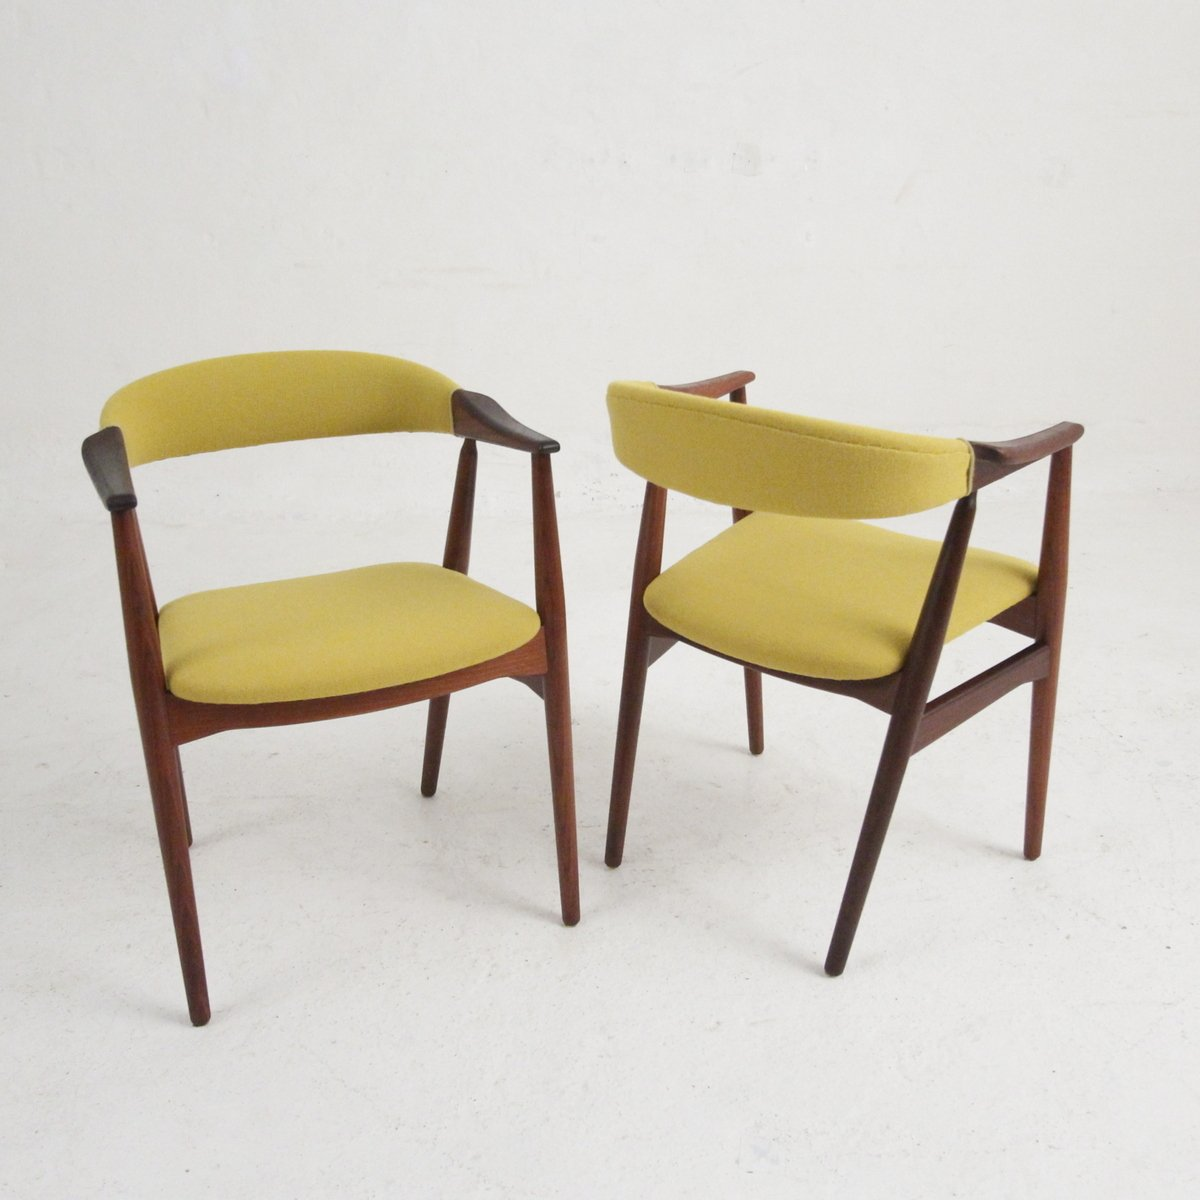 Danish Modern Dining Chair: Danish Modern Dining Chairs In Rosewood, 1960s, Set Of 6